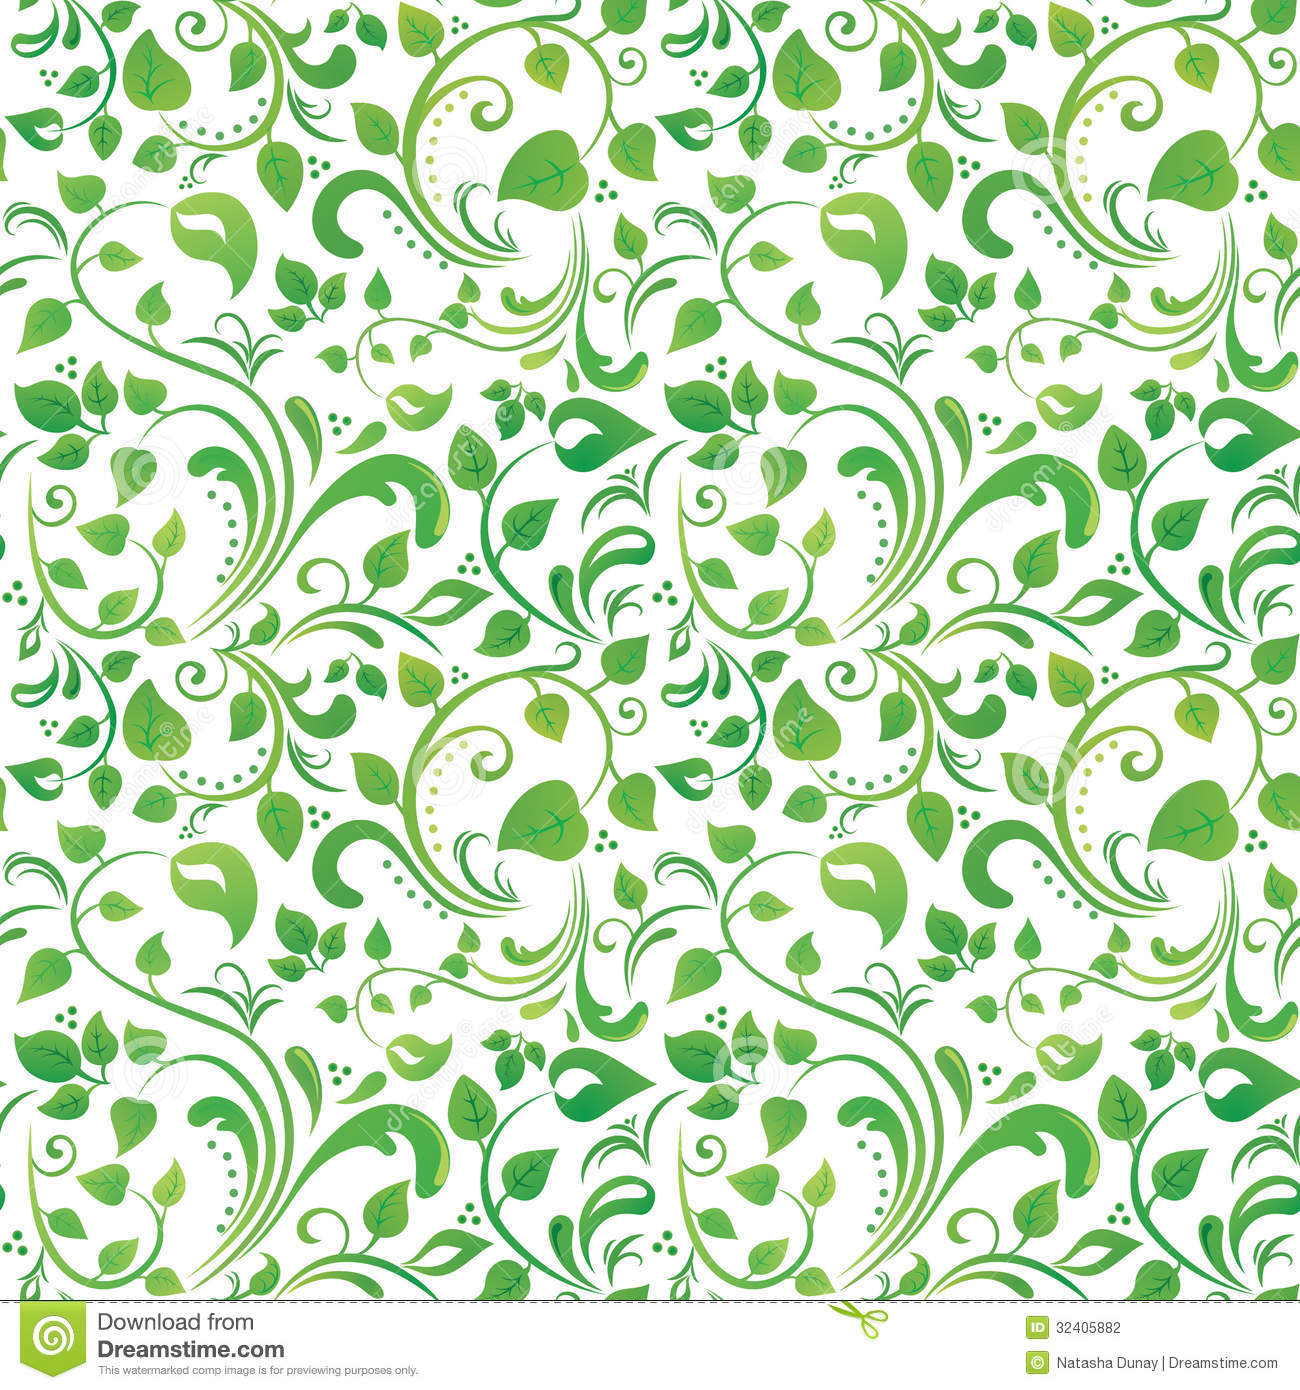 Green floral pattern stock vector. Image of texture ...